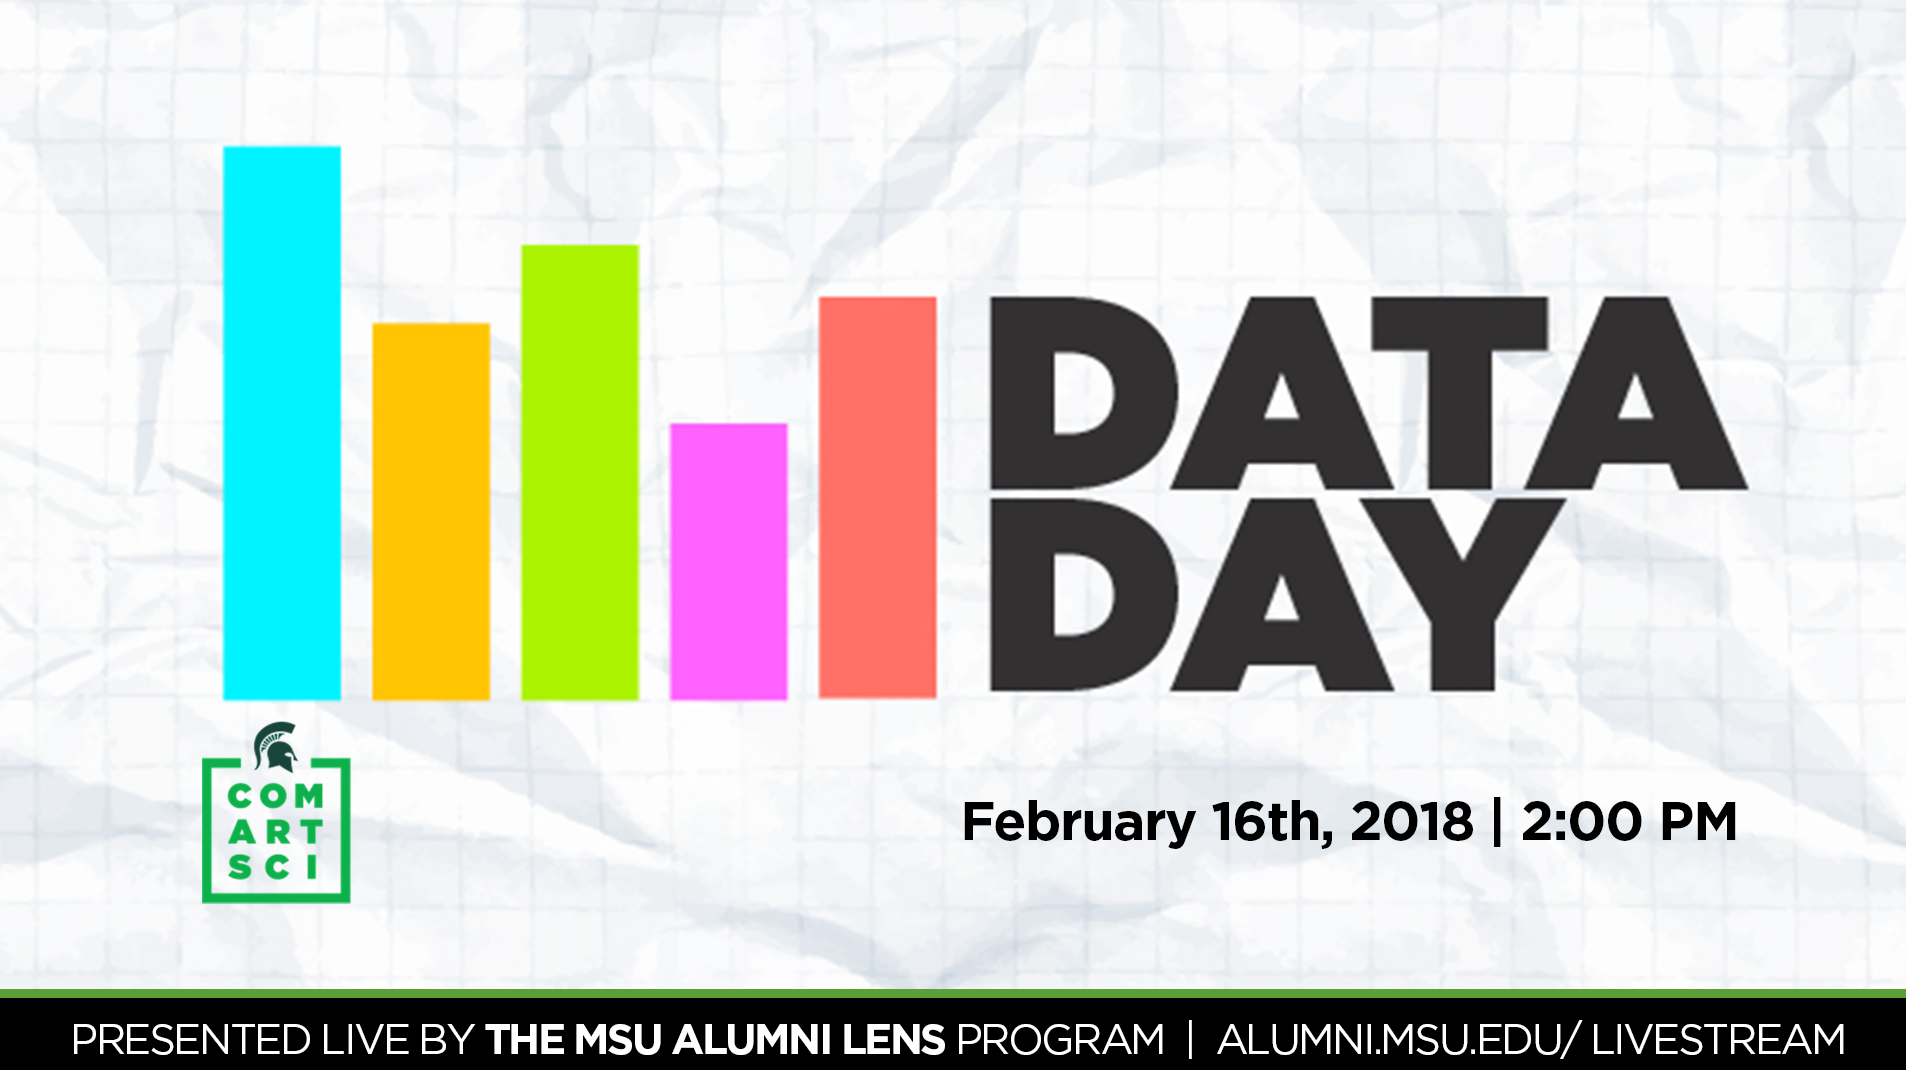 livestream cover image for Data Day 2018